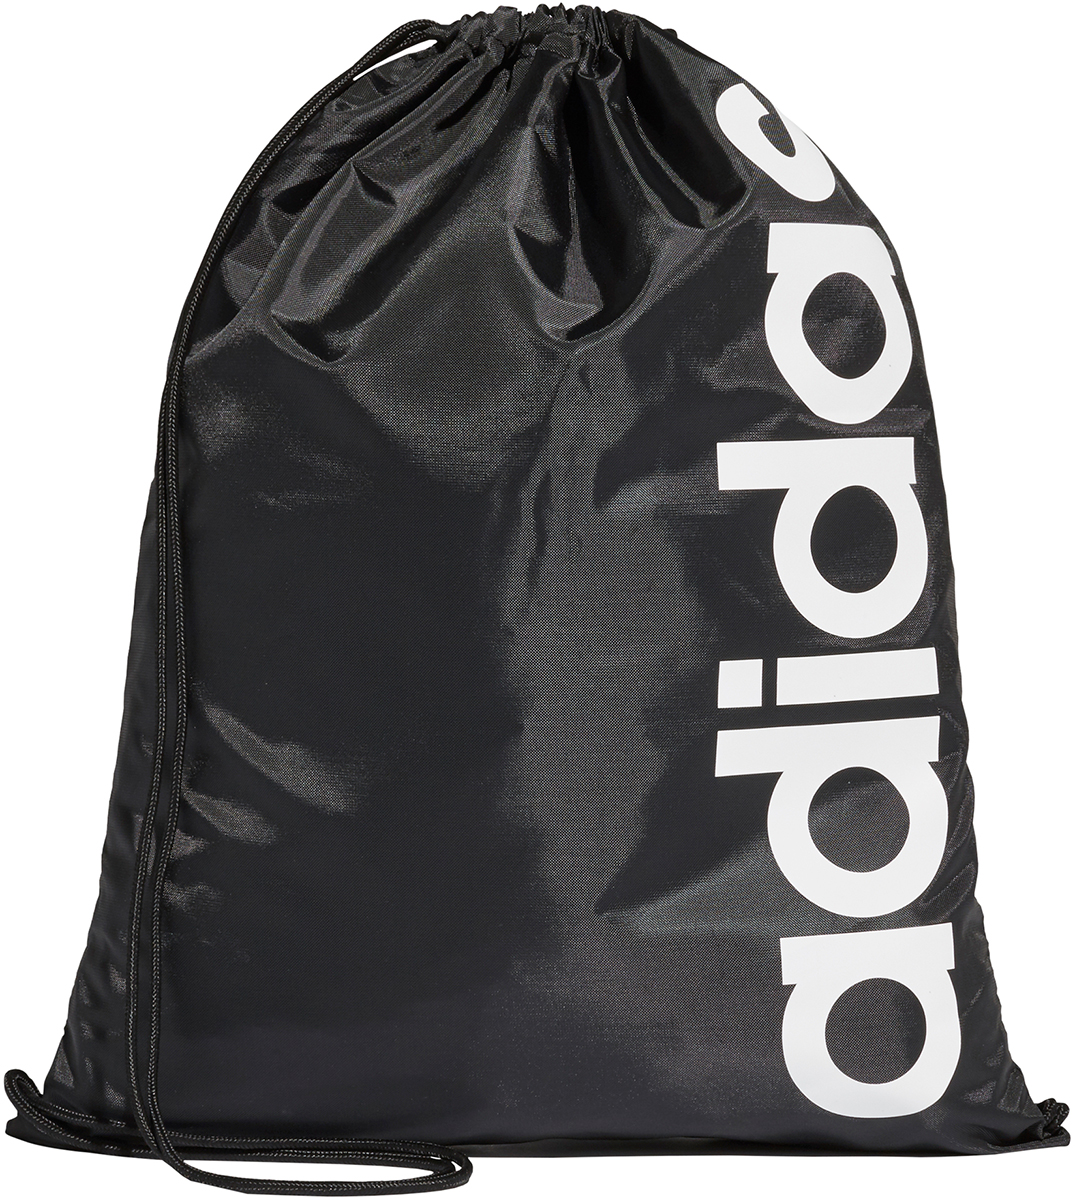 Wiggle Adidas Linear Core Gym Bag